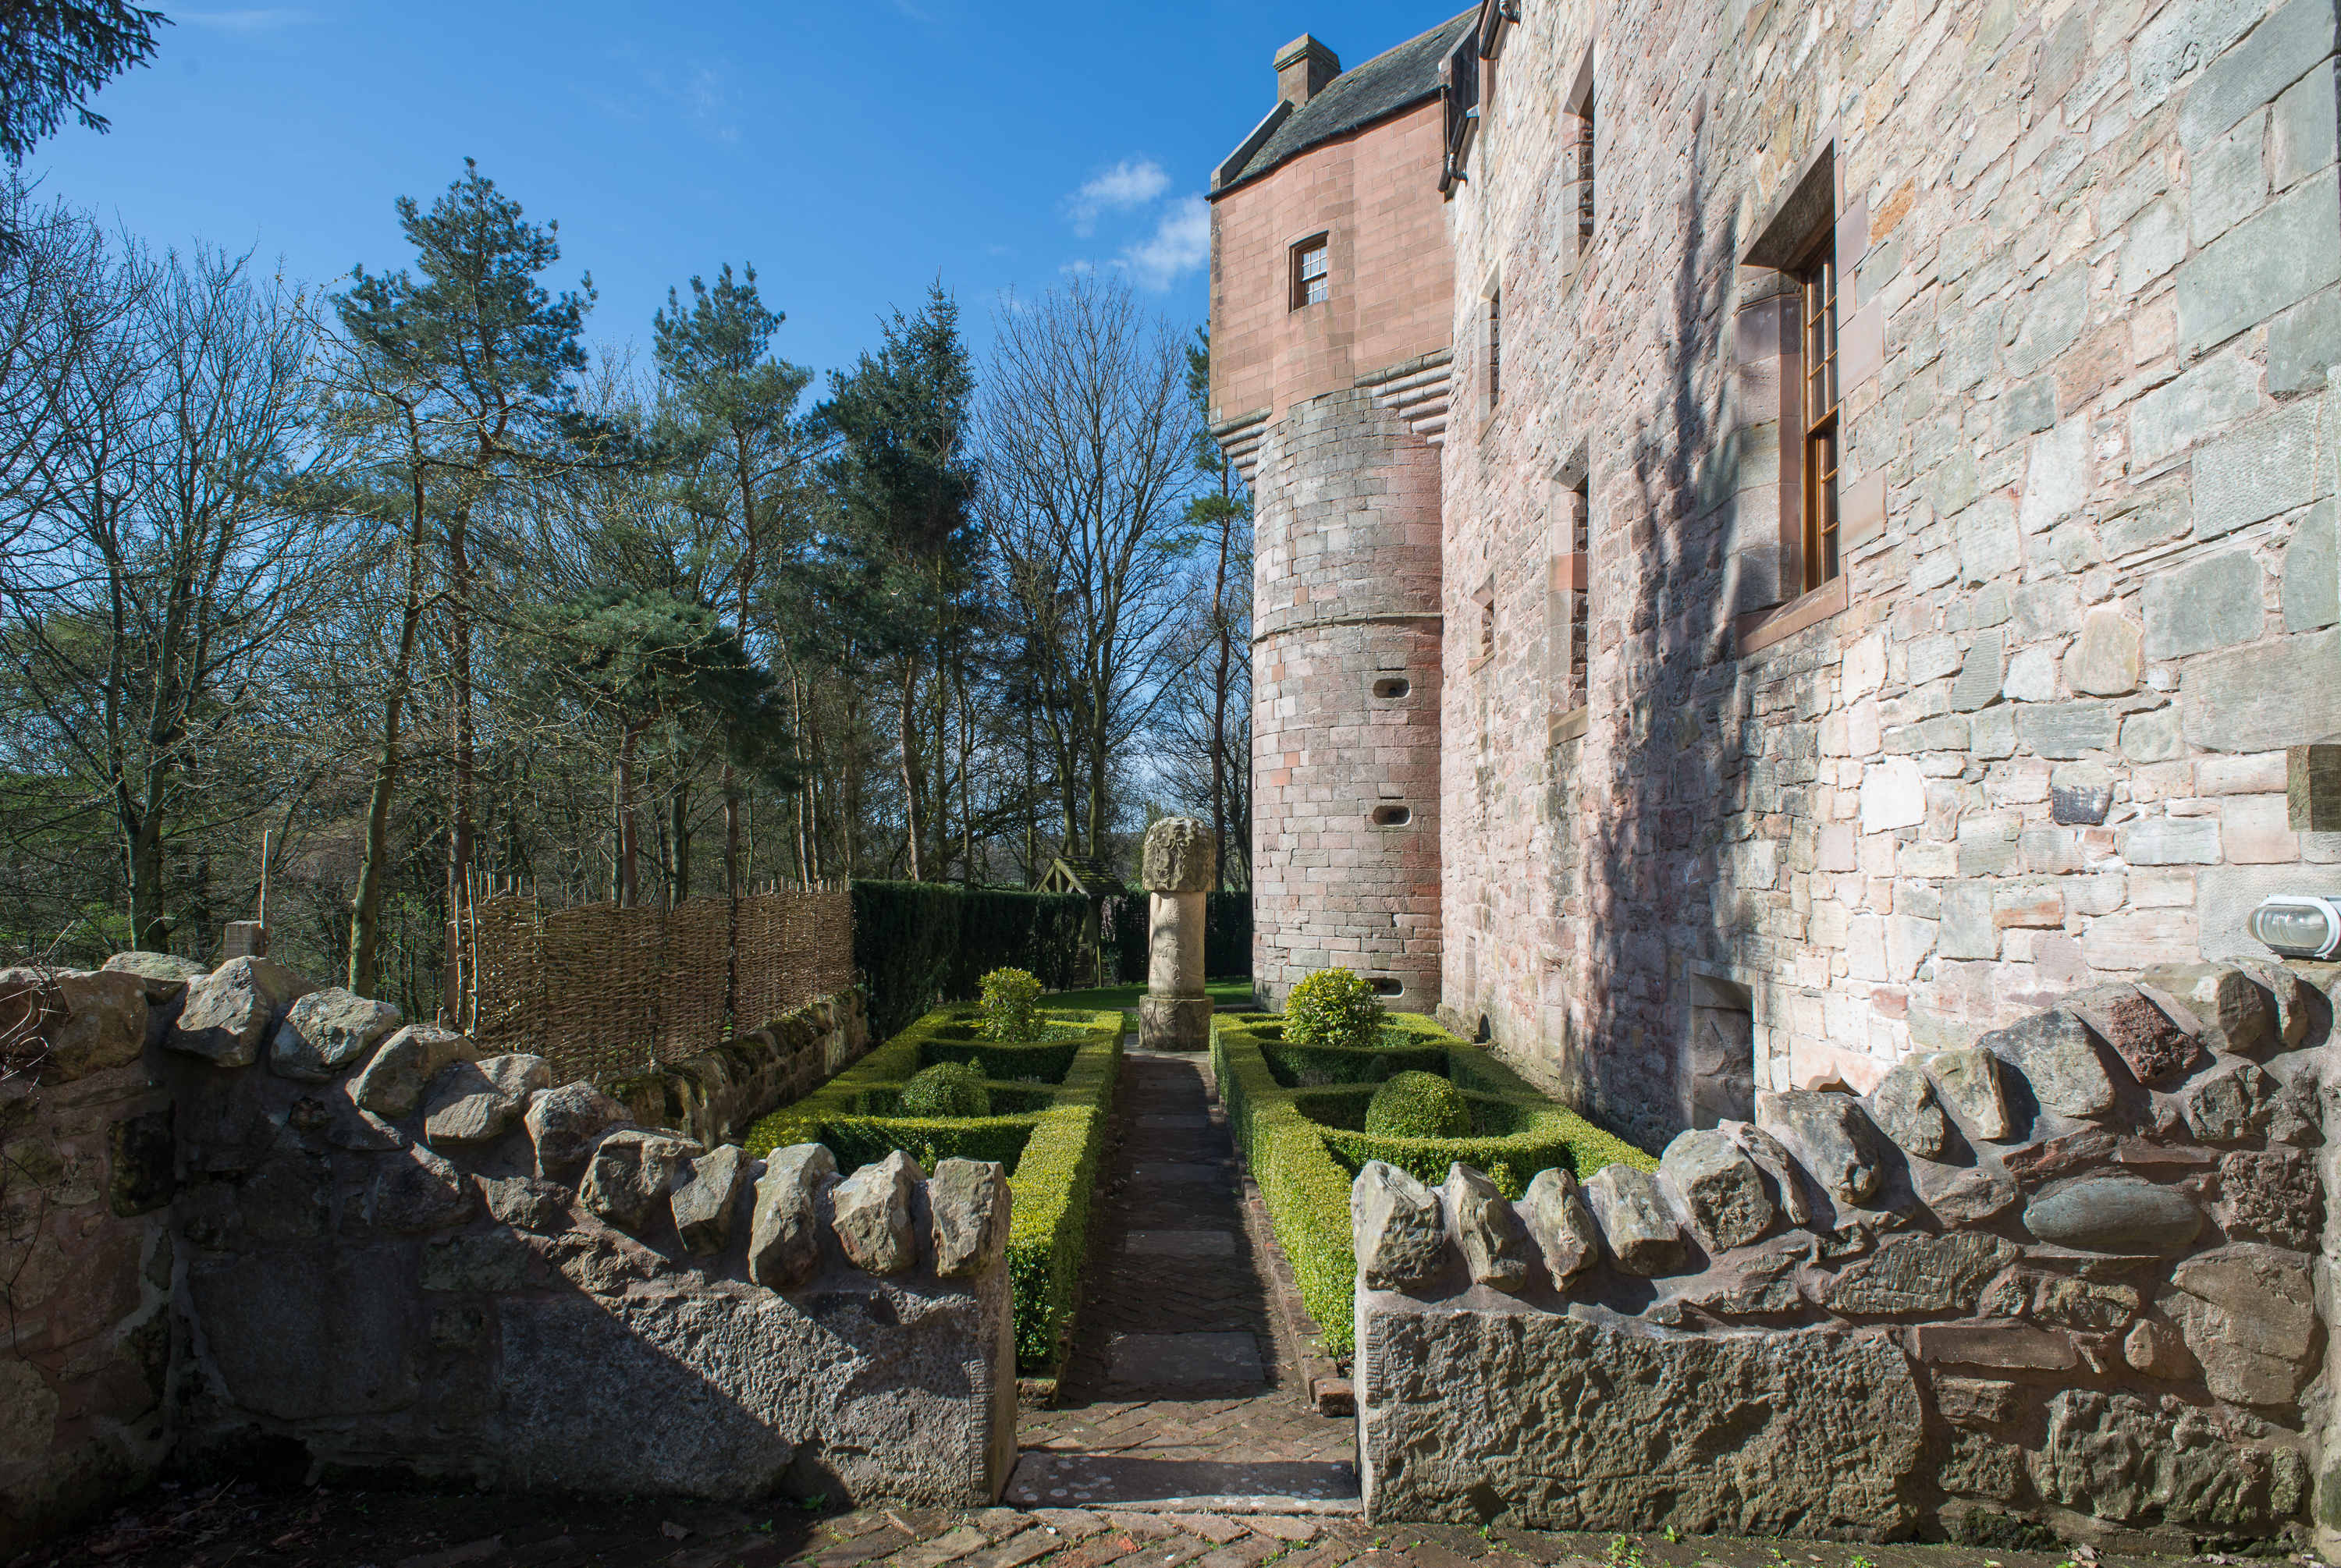 Gallery dairsie castle self catering castle st andrews gallery dairsie castle self catering castle st andrews scottish holiday holiday in scotland golf breaks beaches sciox Images